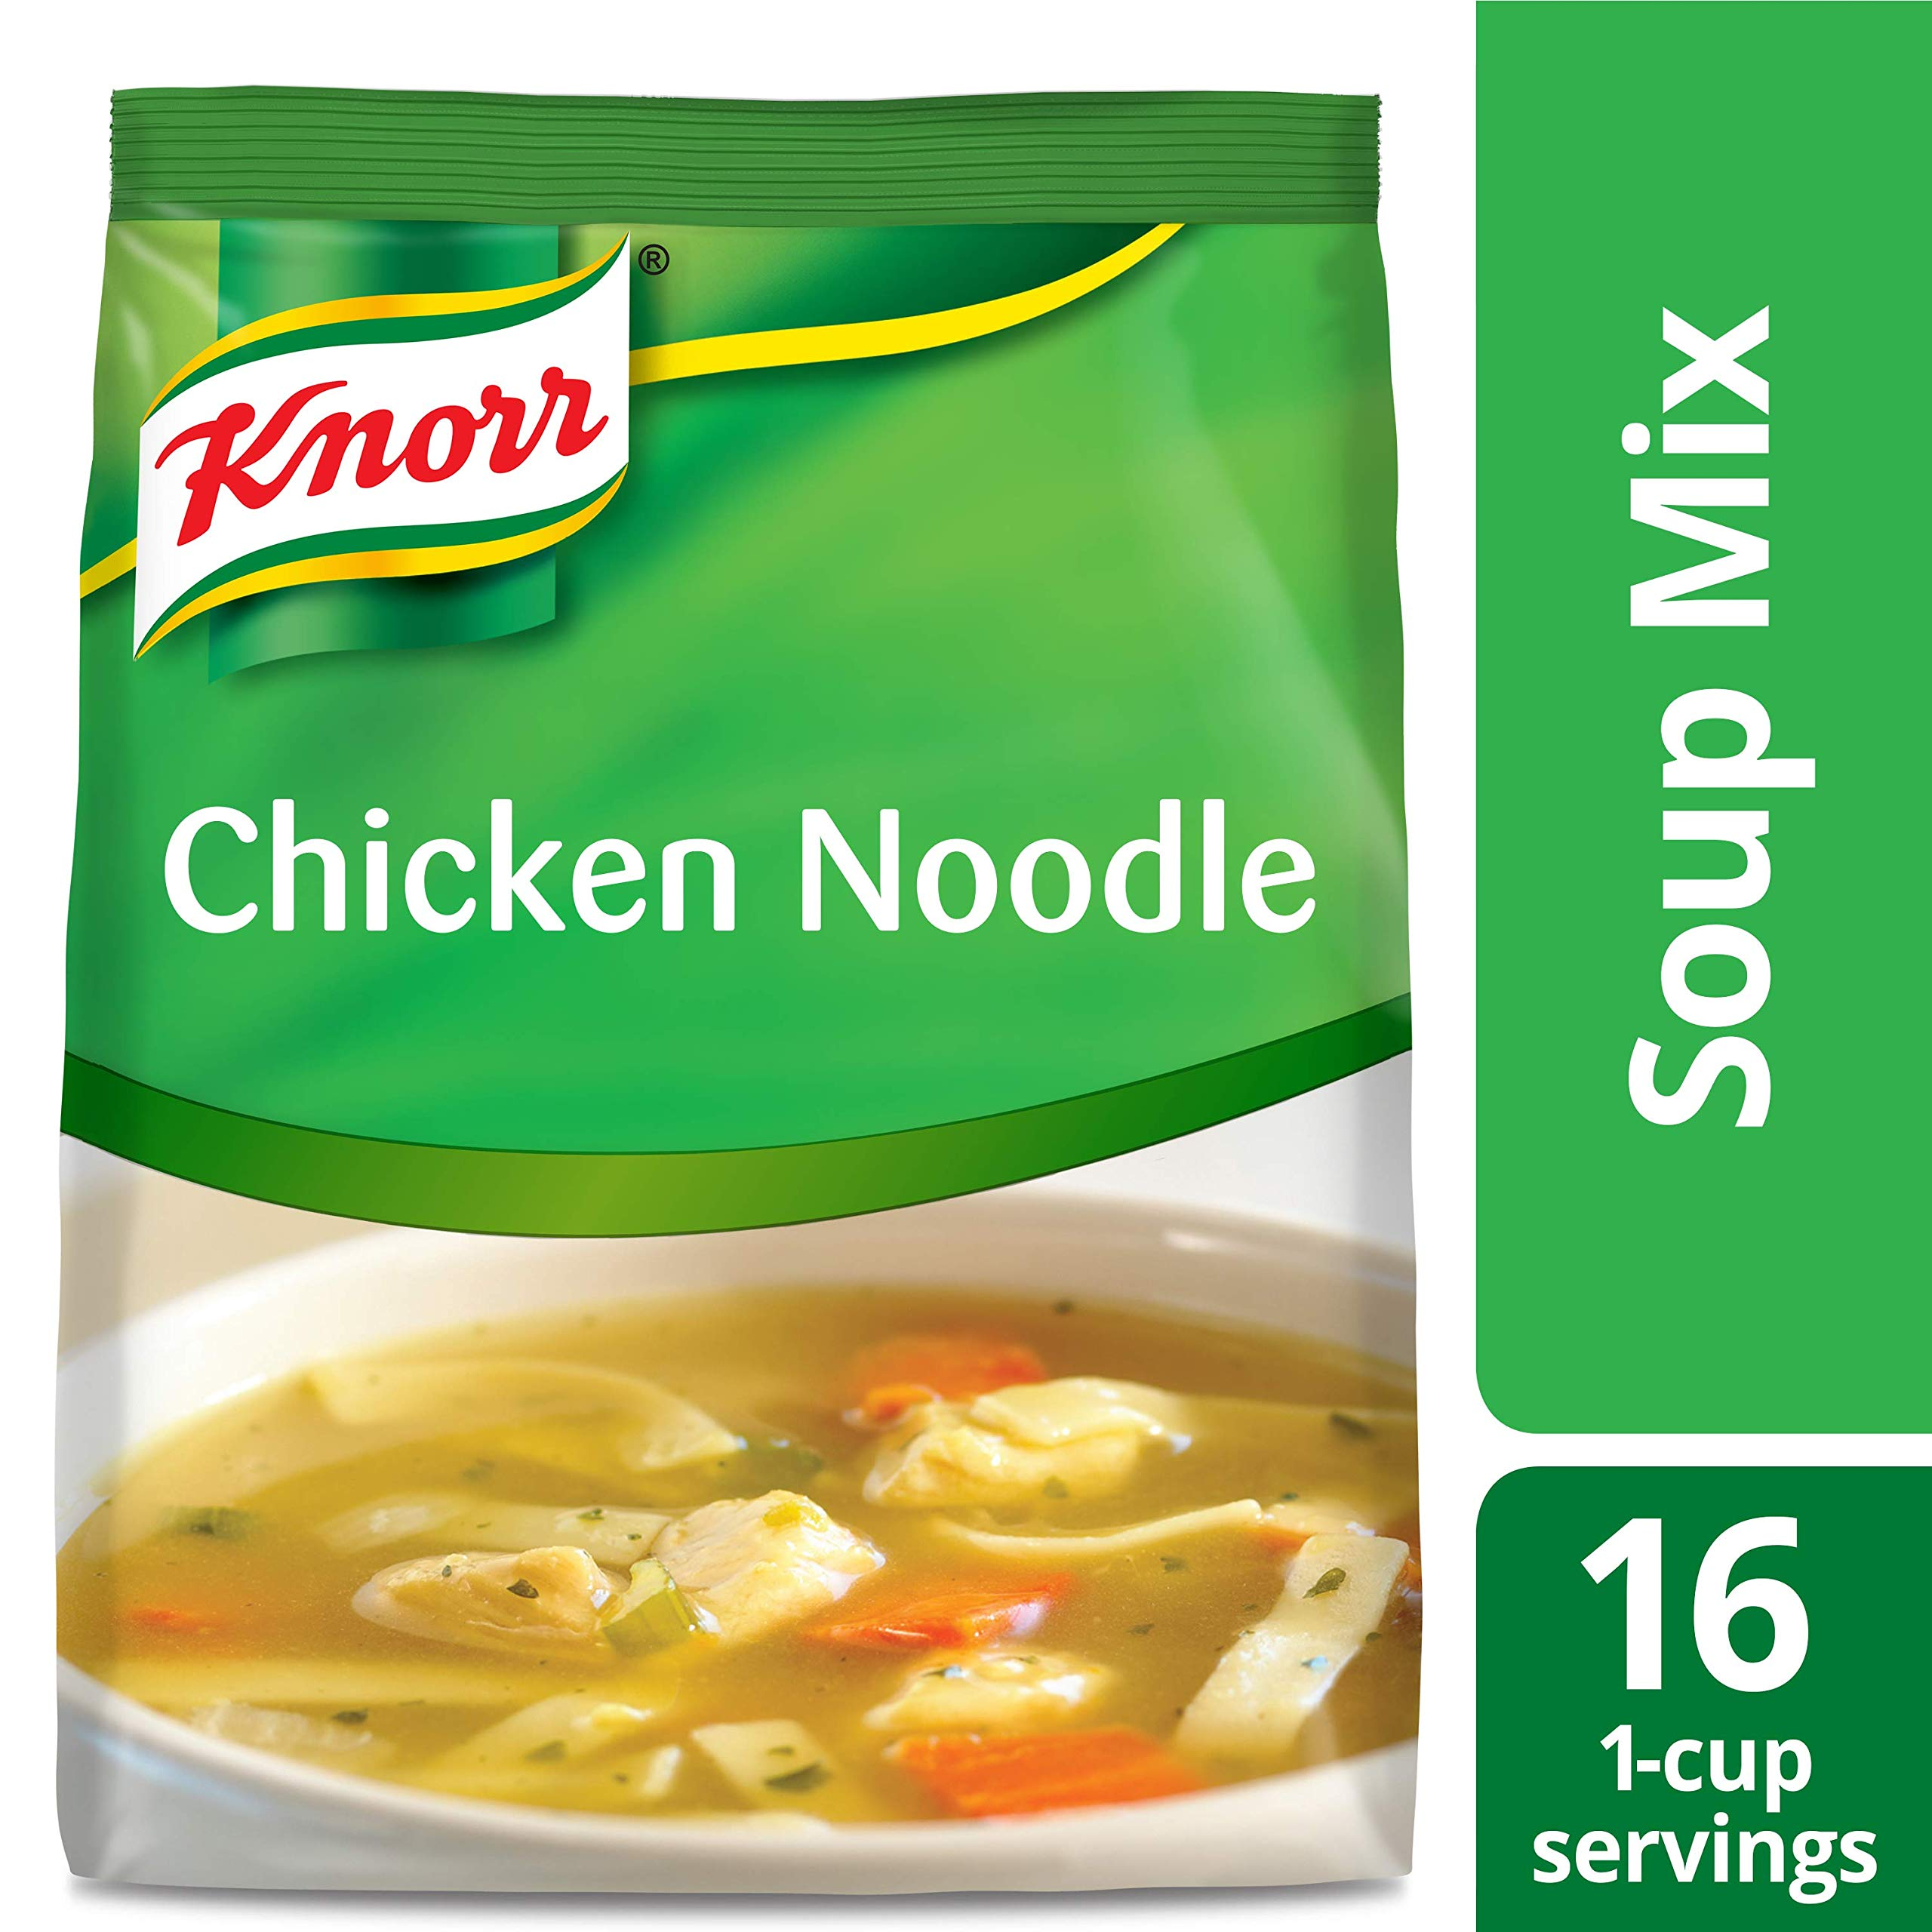 Knorr Professional Soup du Jour Chicken Noodle Soup Mix No added MSG, 0g Trans Fat per Serving, Just Add Water, 13.3 oz, Pack of 4 by Knorr